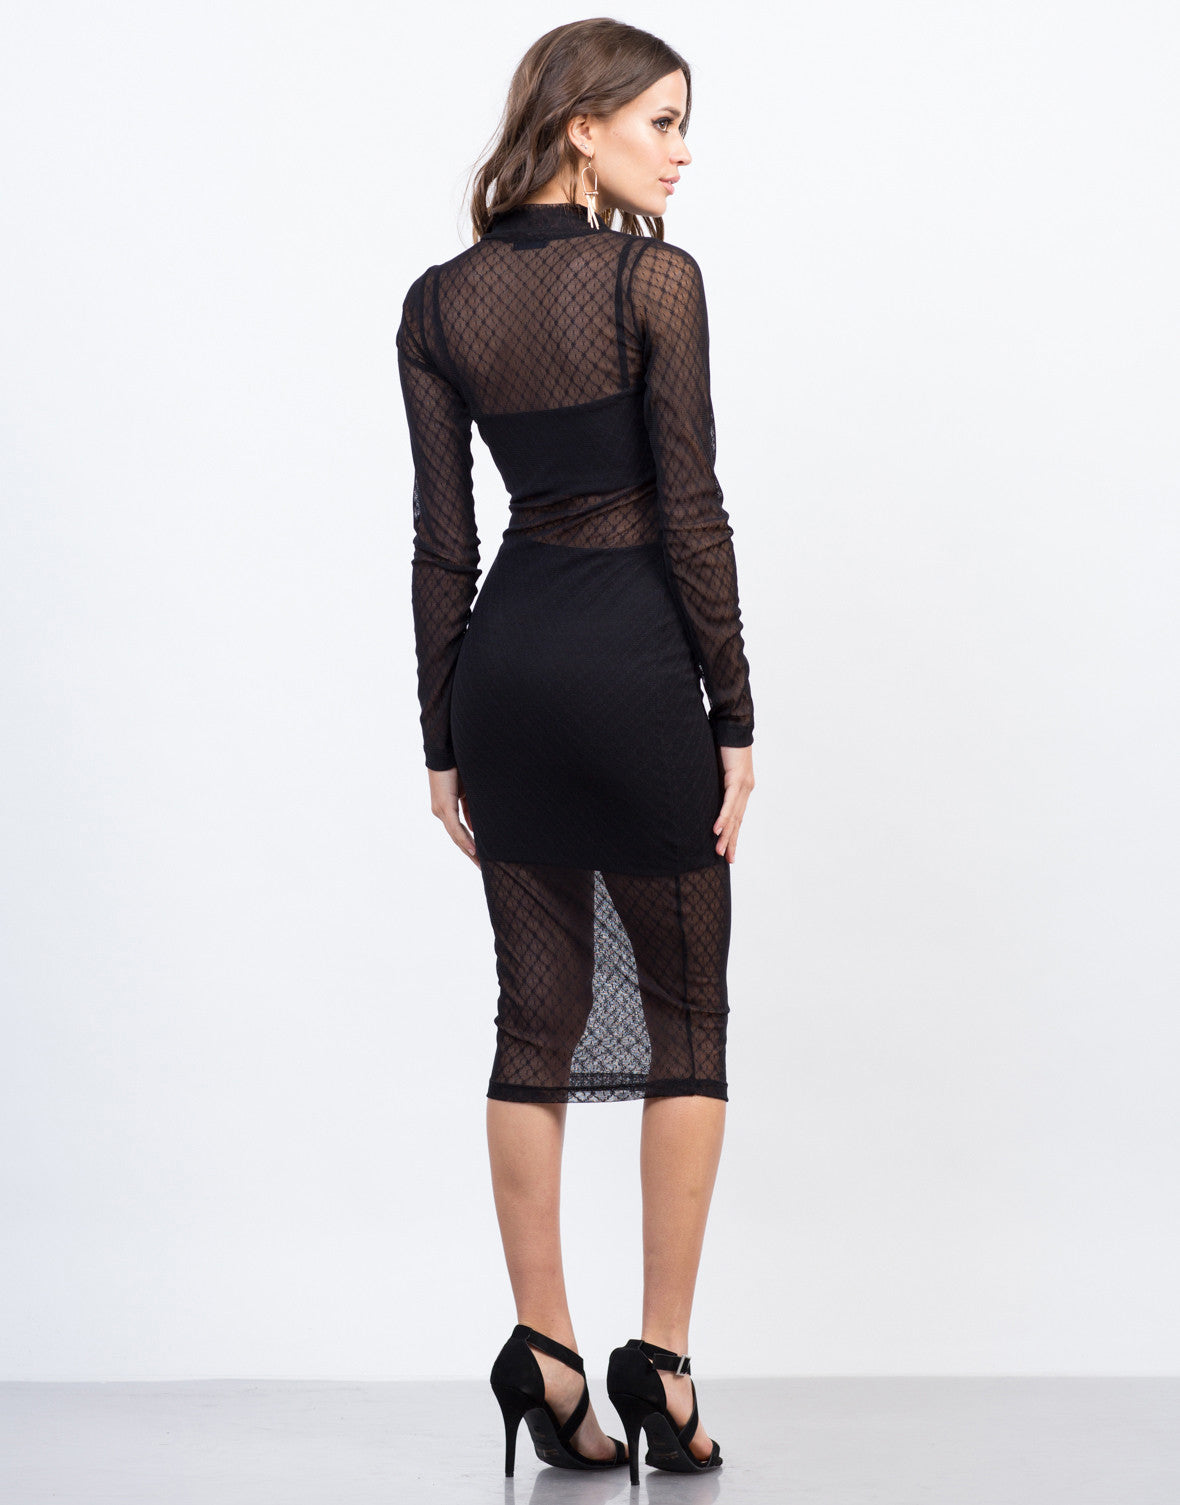 Back View of Mesh Lined Party Dress